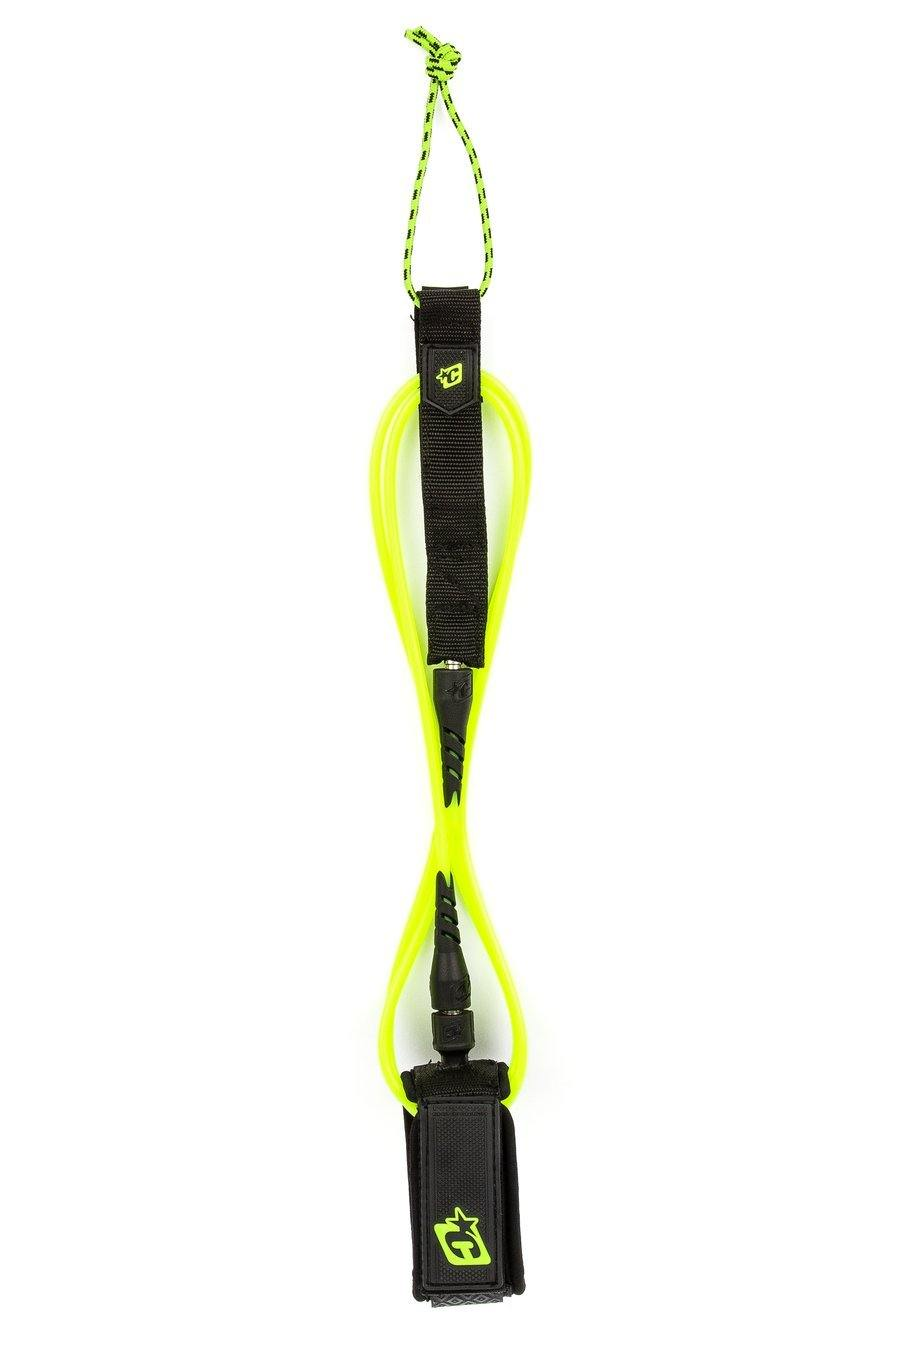 5' or 6' Creatures of Leisure Lite Leash - Colors Vary